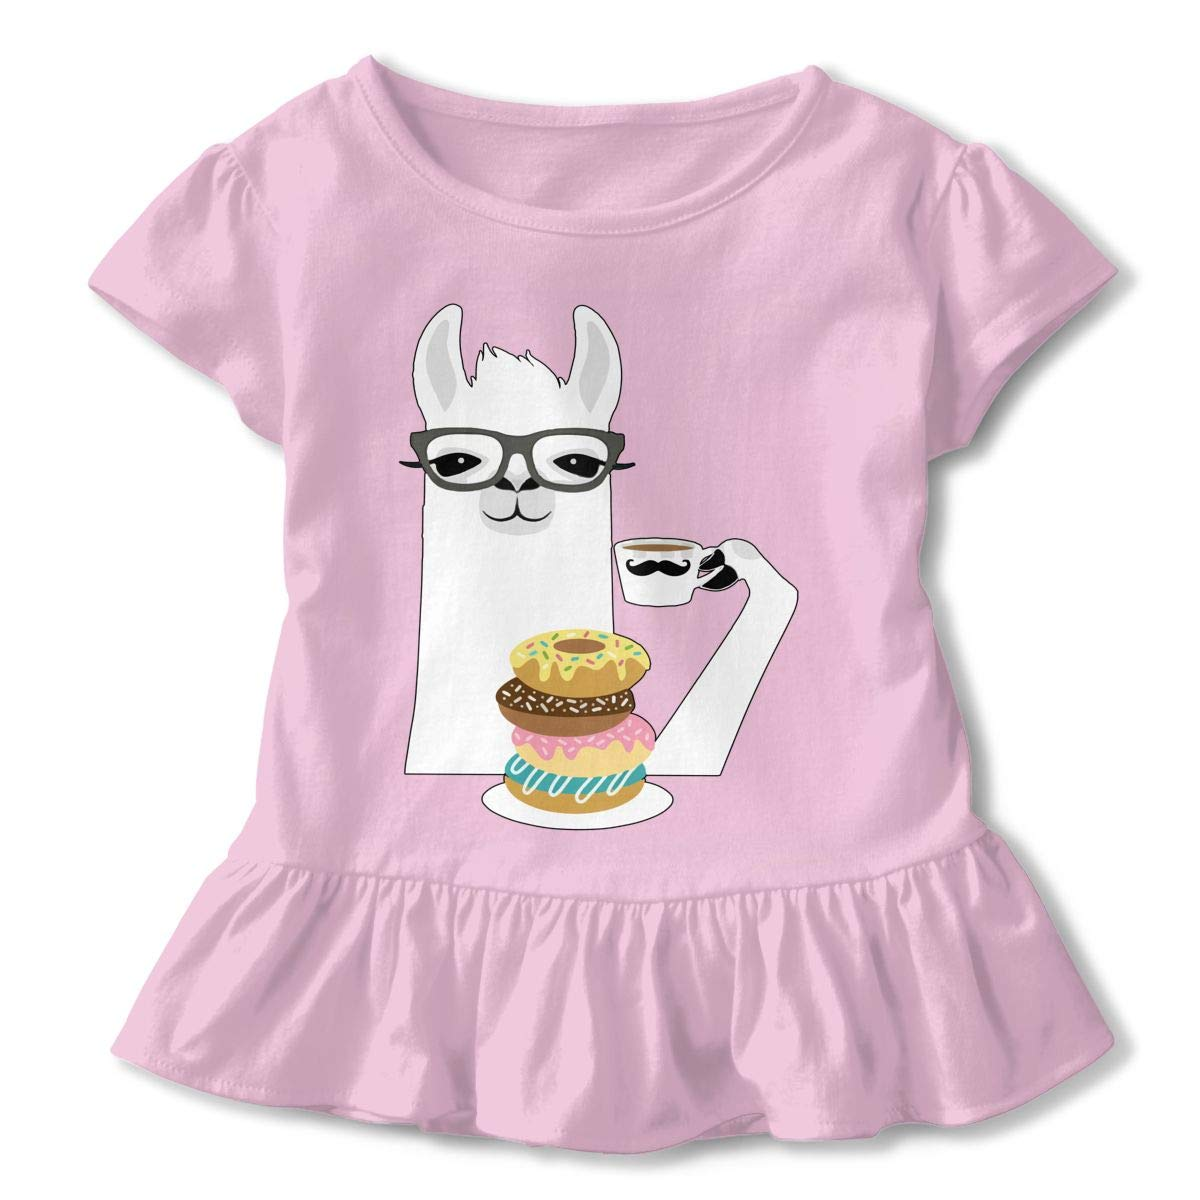 Cheng Jian Bo Llama Donut Toddler Girls T Shirt Kids Cotton Short Sleeve Ruffle Tee